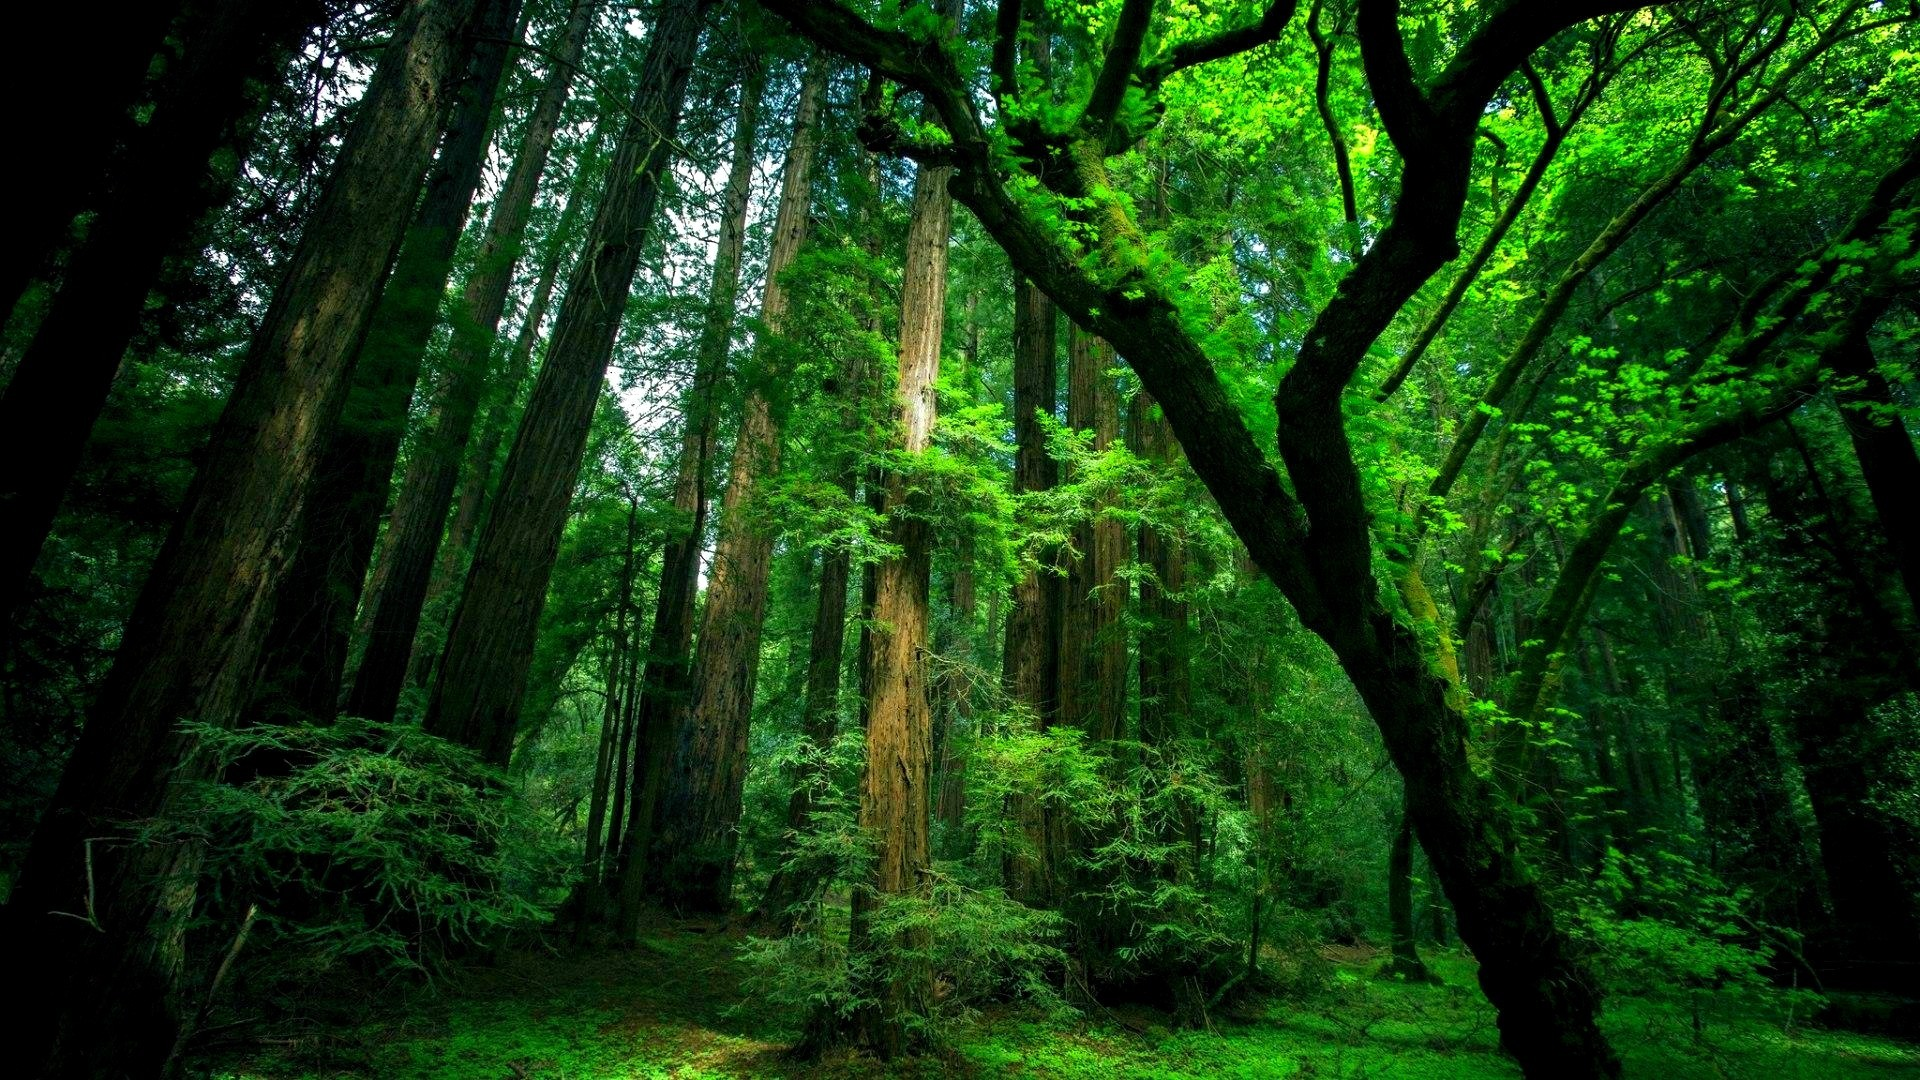 Forest Desktop Backgrounds - Wallpapers Browse